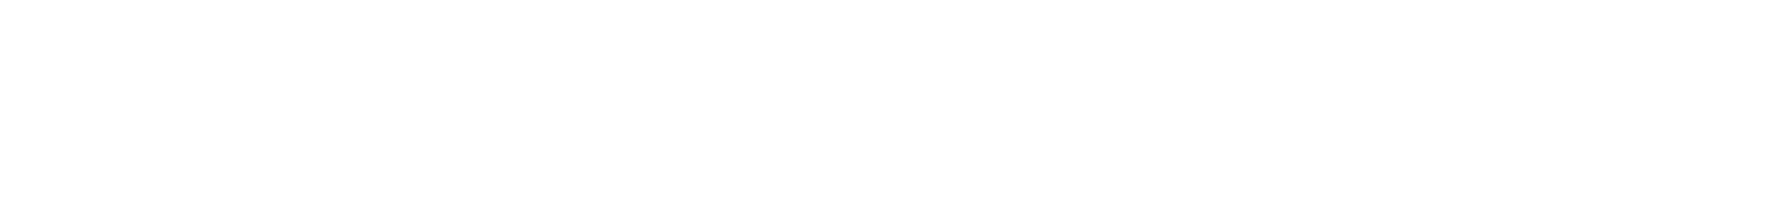 i-SPEED 210/211 logo.